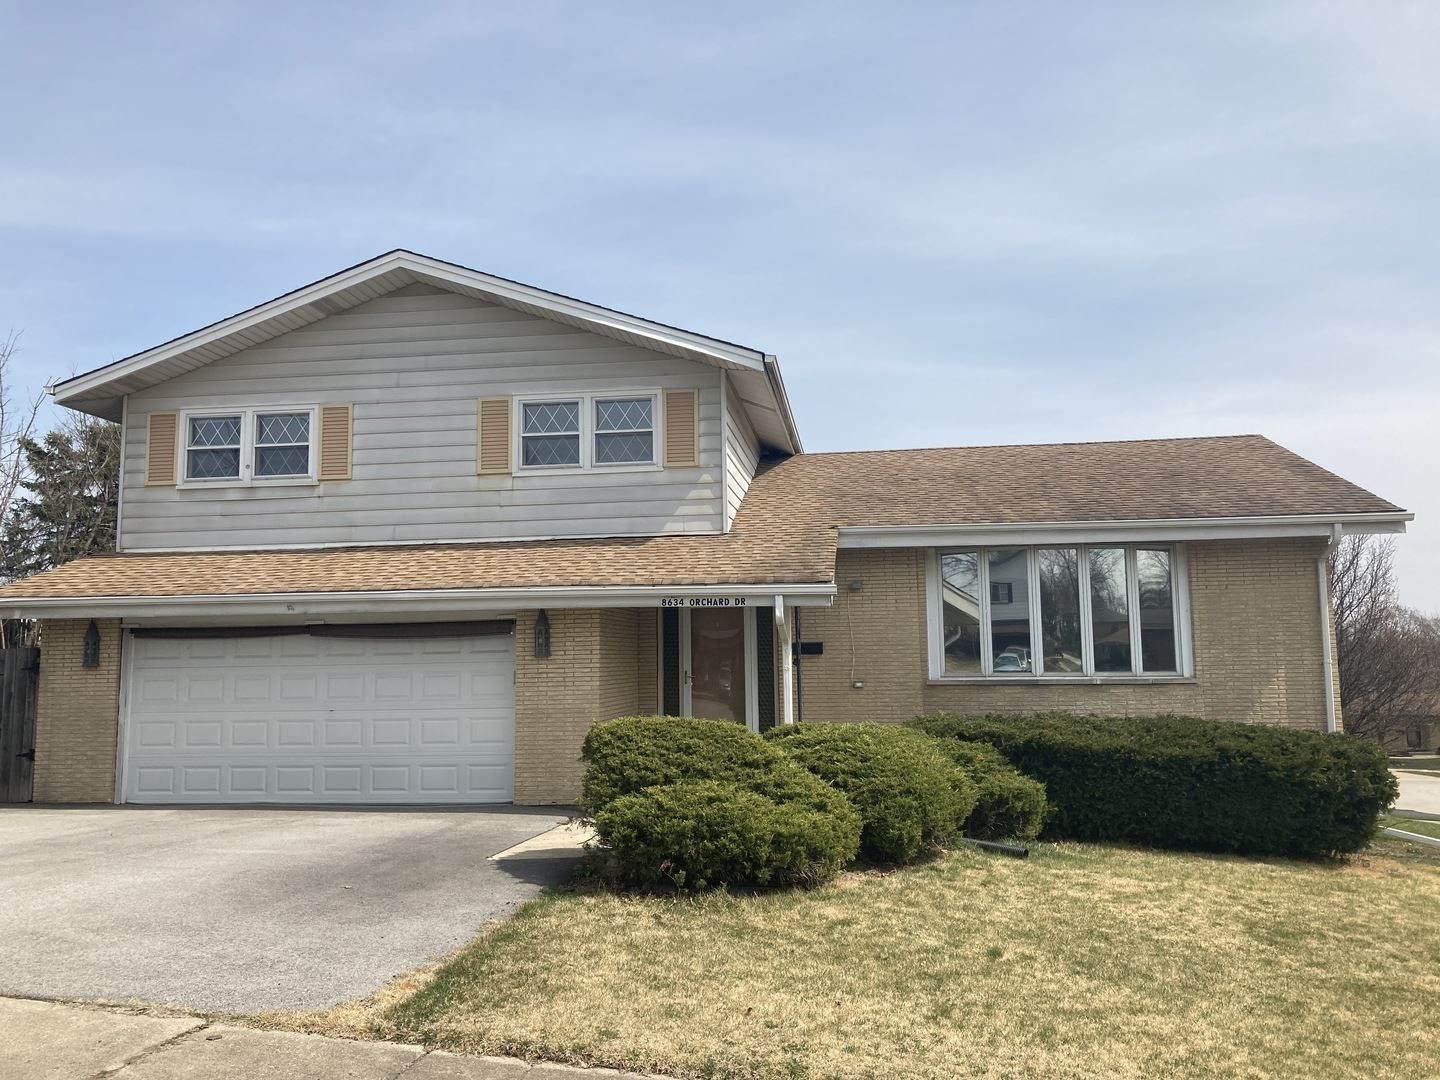 8634 orchard Drive, Hickory Hills, IL 60457 - #: 11038058